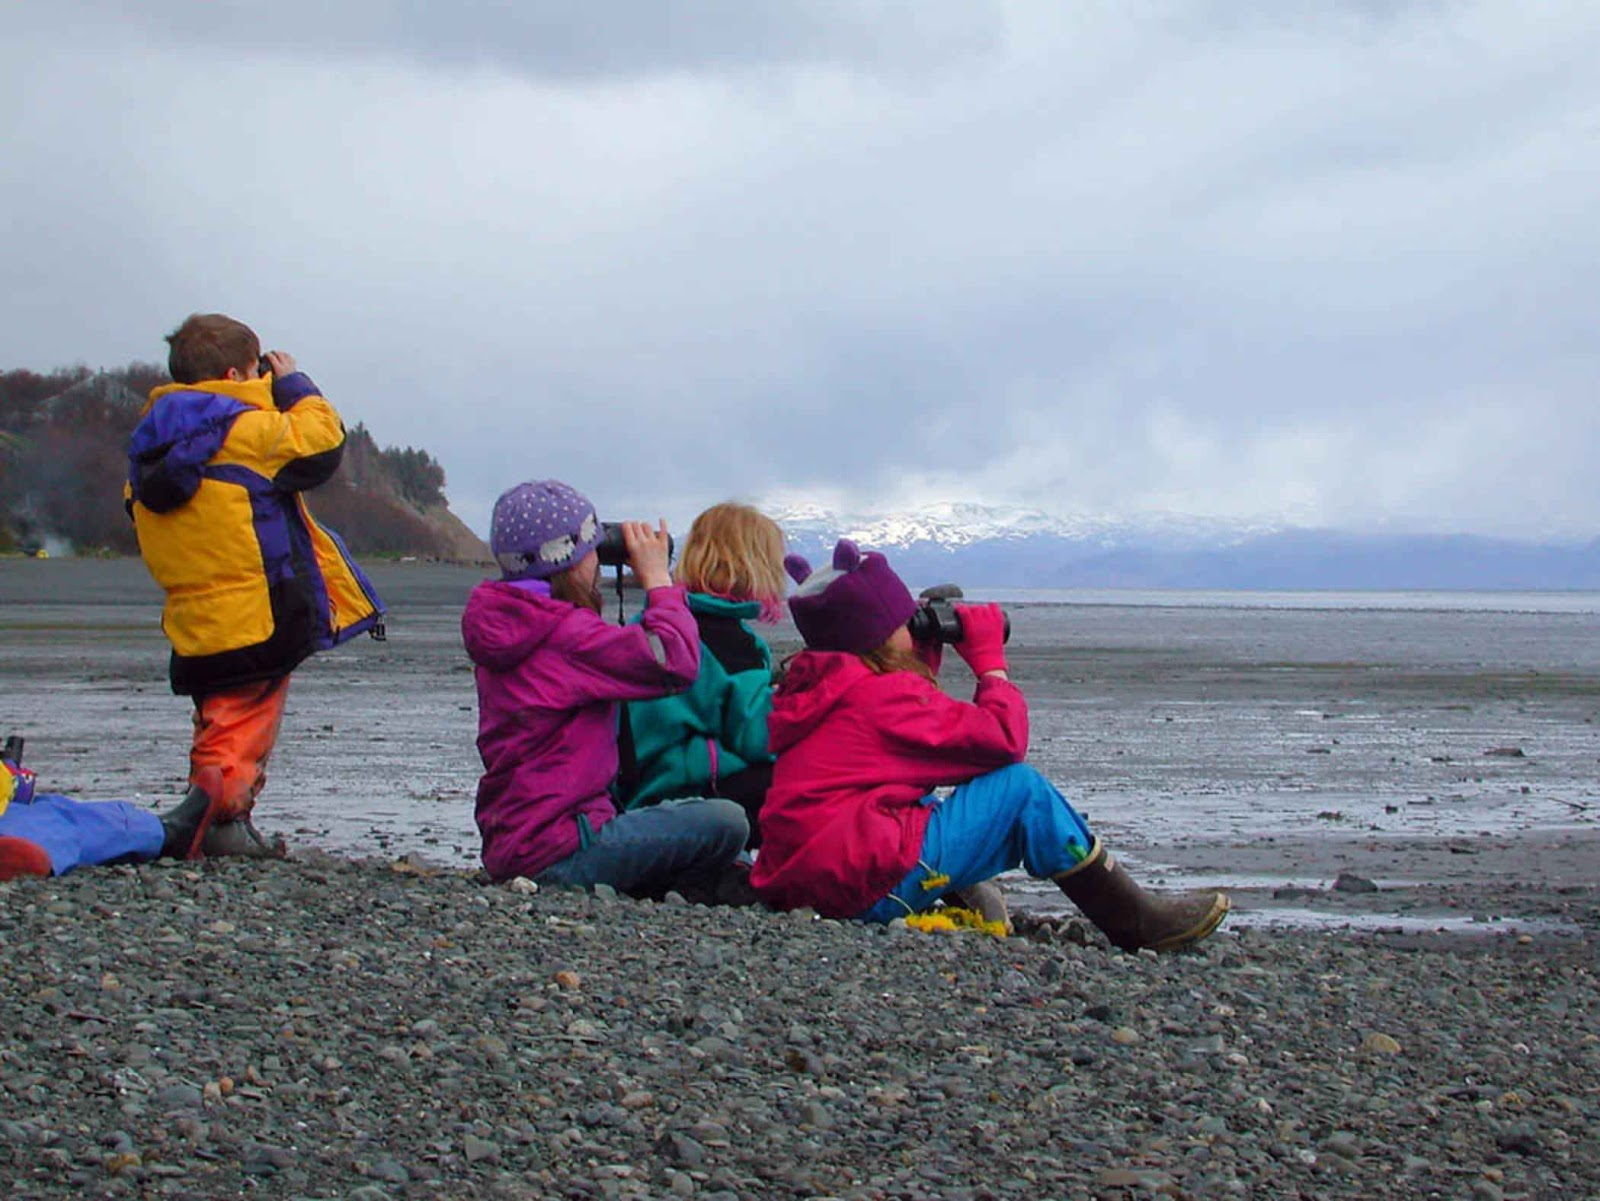 Children_sit_on_the_beach_and_watching_the_horizon_with_binoculars.jpg